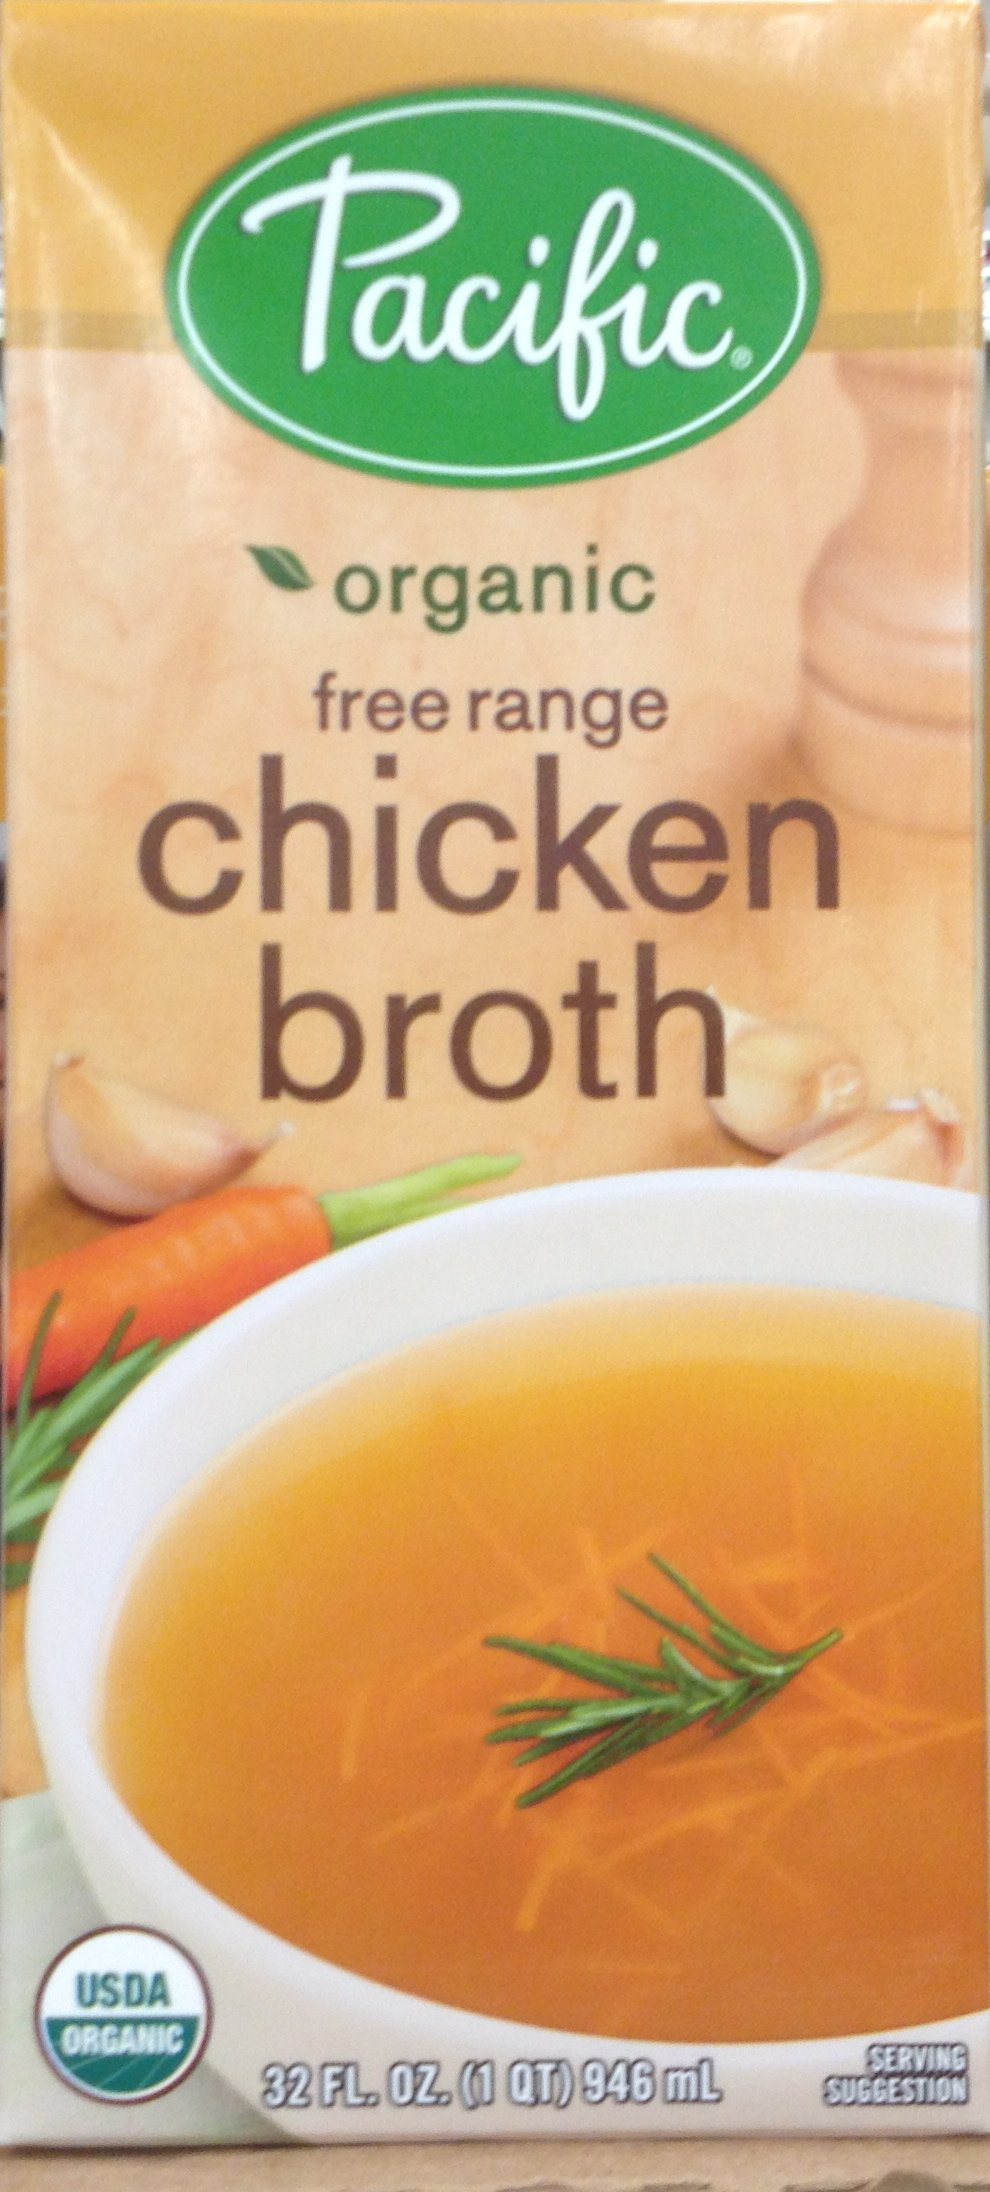 Pacific Foods Broth Chkn Frange Org Gf